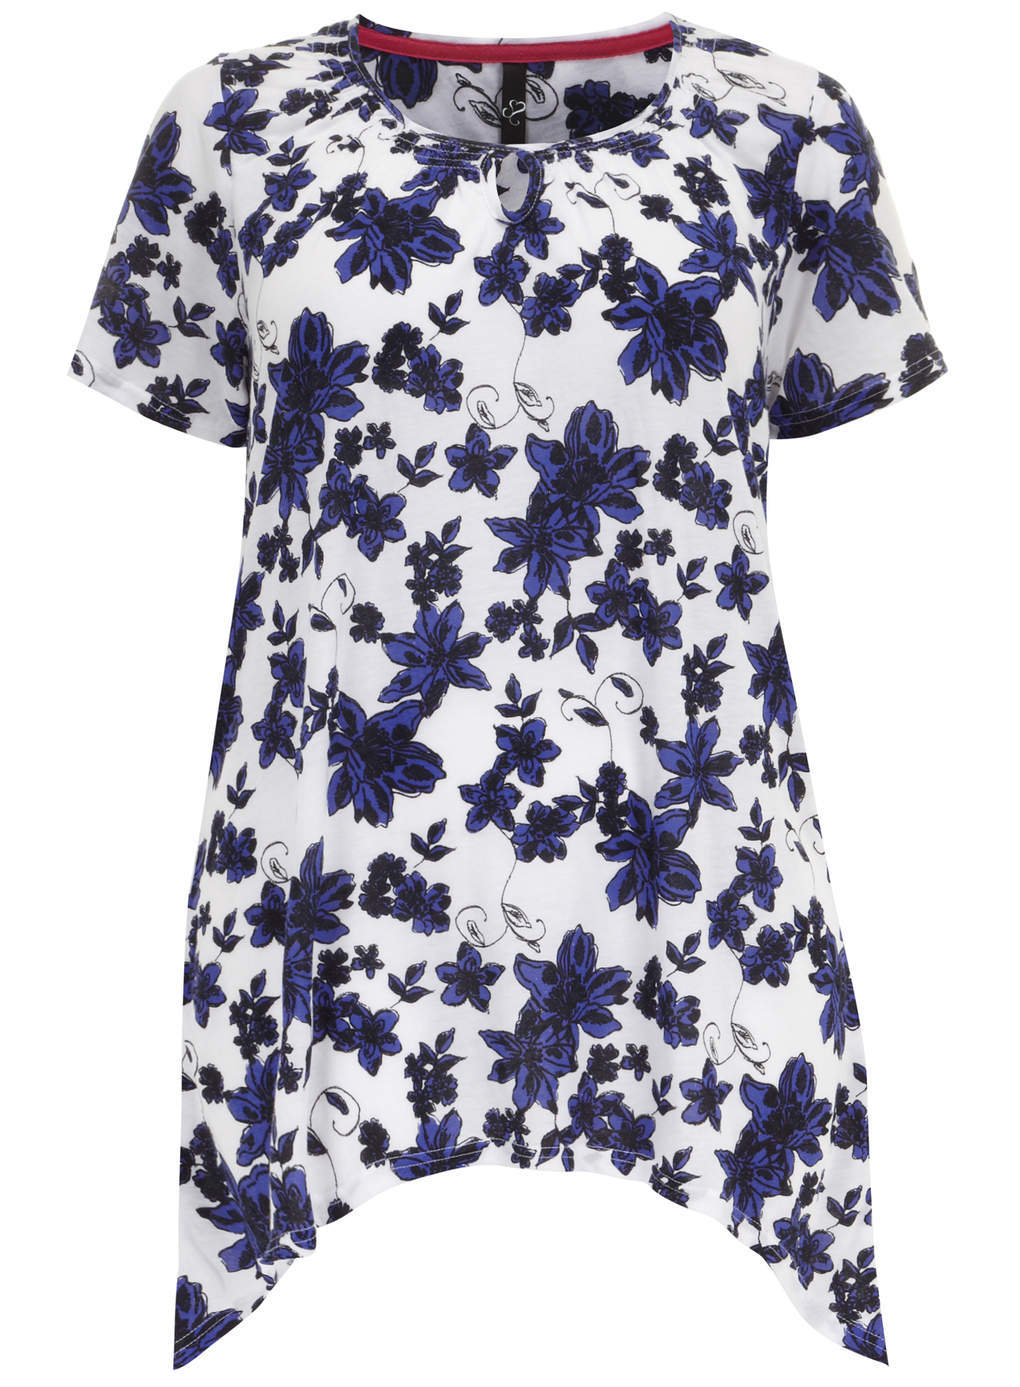 Floral Print Top With Hanky Hem - neckline: round neck; length: below the bottom; secondary colour: white; predominant colour: navy; occasions: casual, evening, creative work; style: top; fibres: polyester/polyamide - mix; fit: body skimming; hip detail: dip hem; sleeve length: short sleeve; sleeve style: standard; pattern type: fabric; pattern size: standard; pattern: florals; texture group: jersey - stretchy/drapey; trends: furious florals; season: s/s 2014